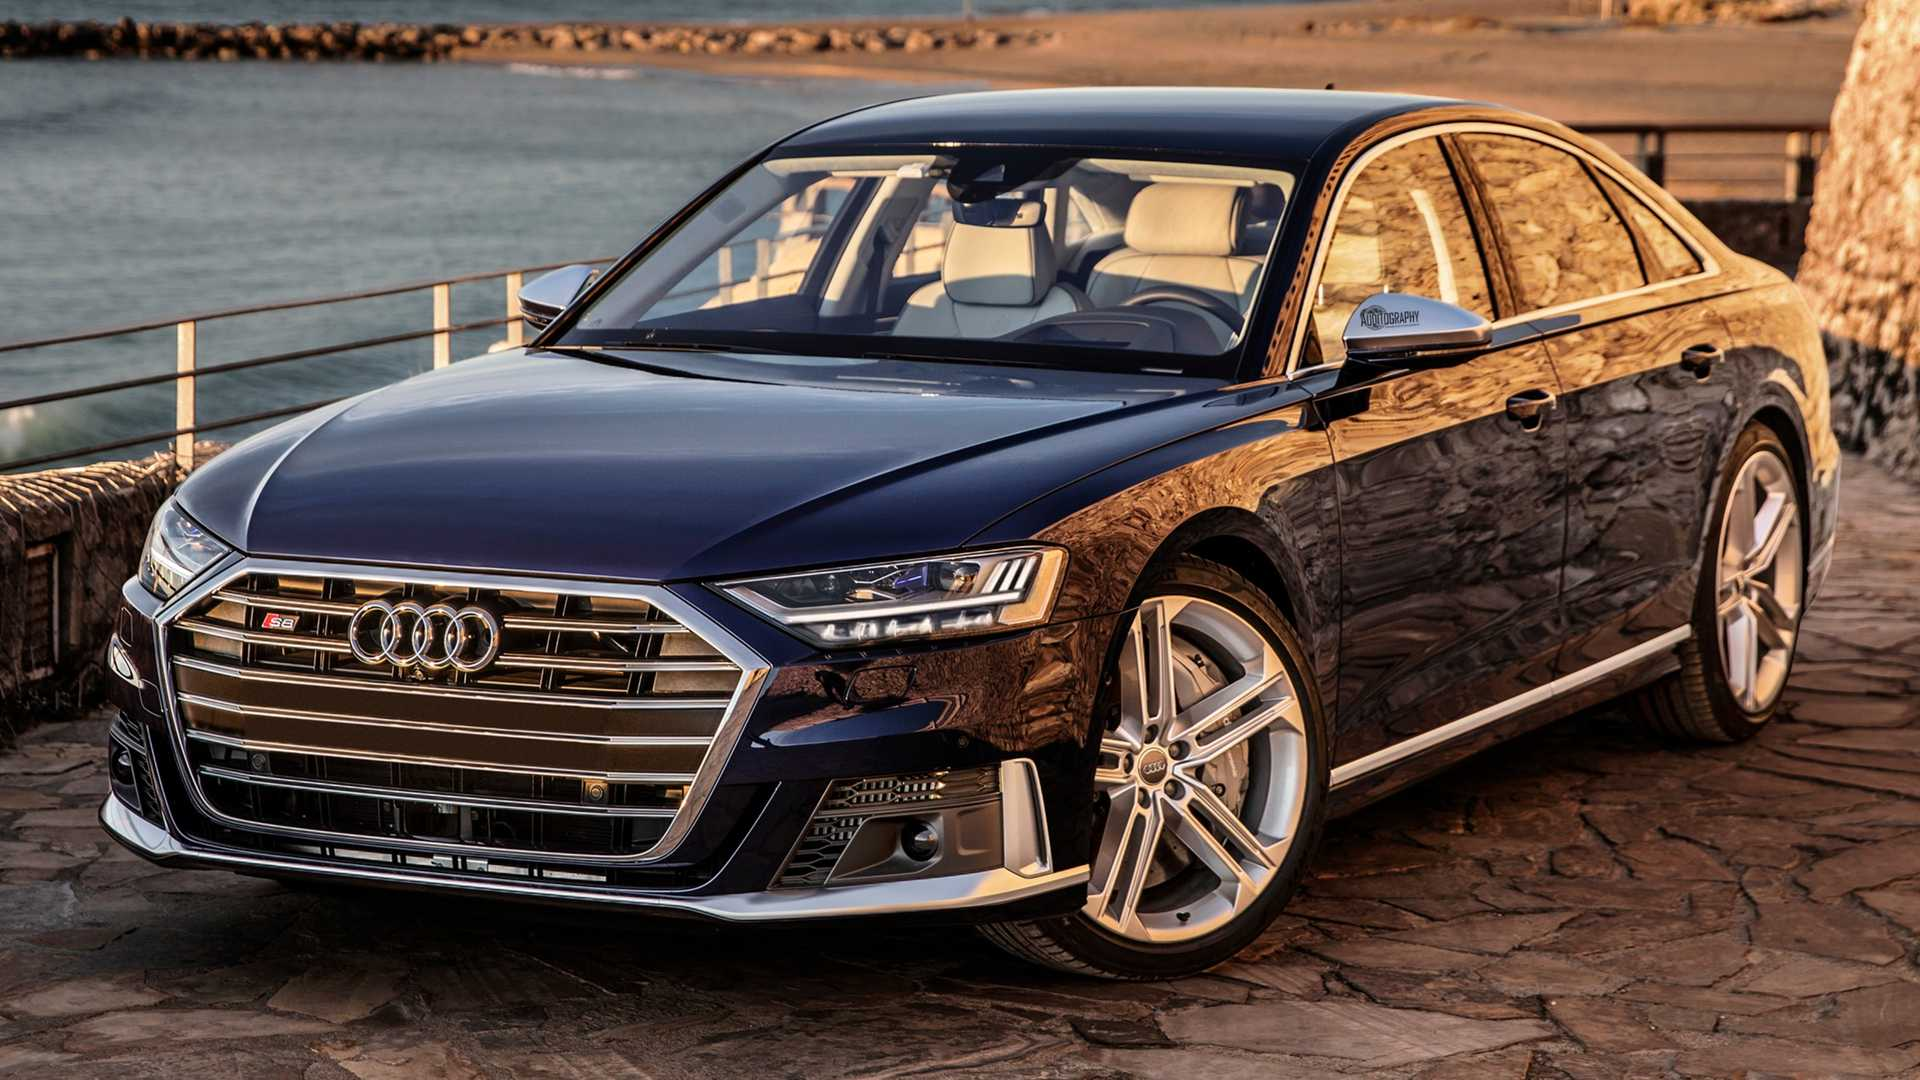 2020 Audi S8 Shot By Auditography 4507015